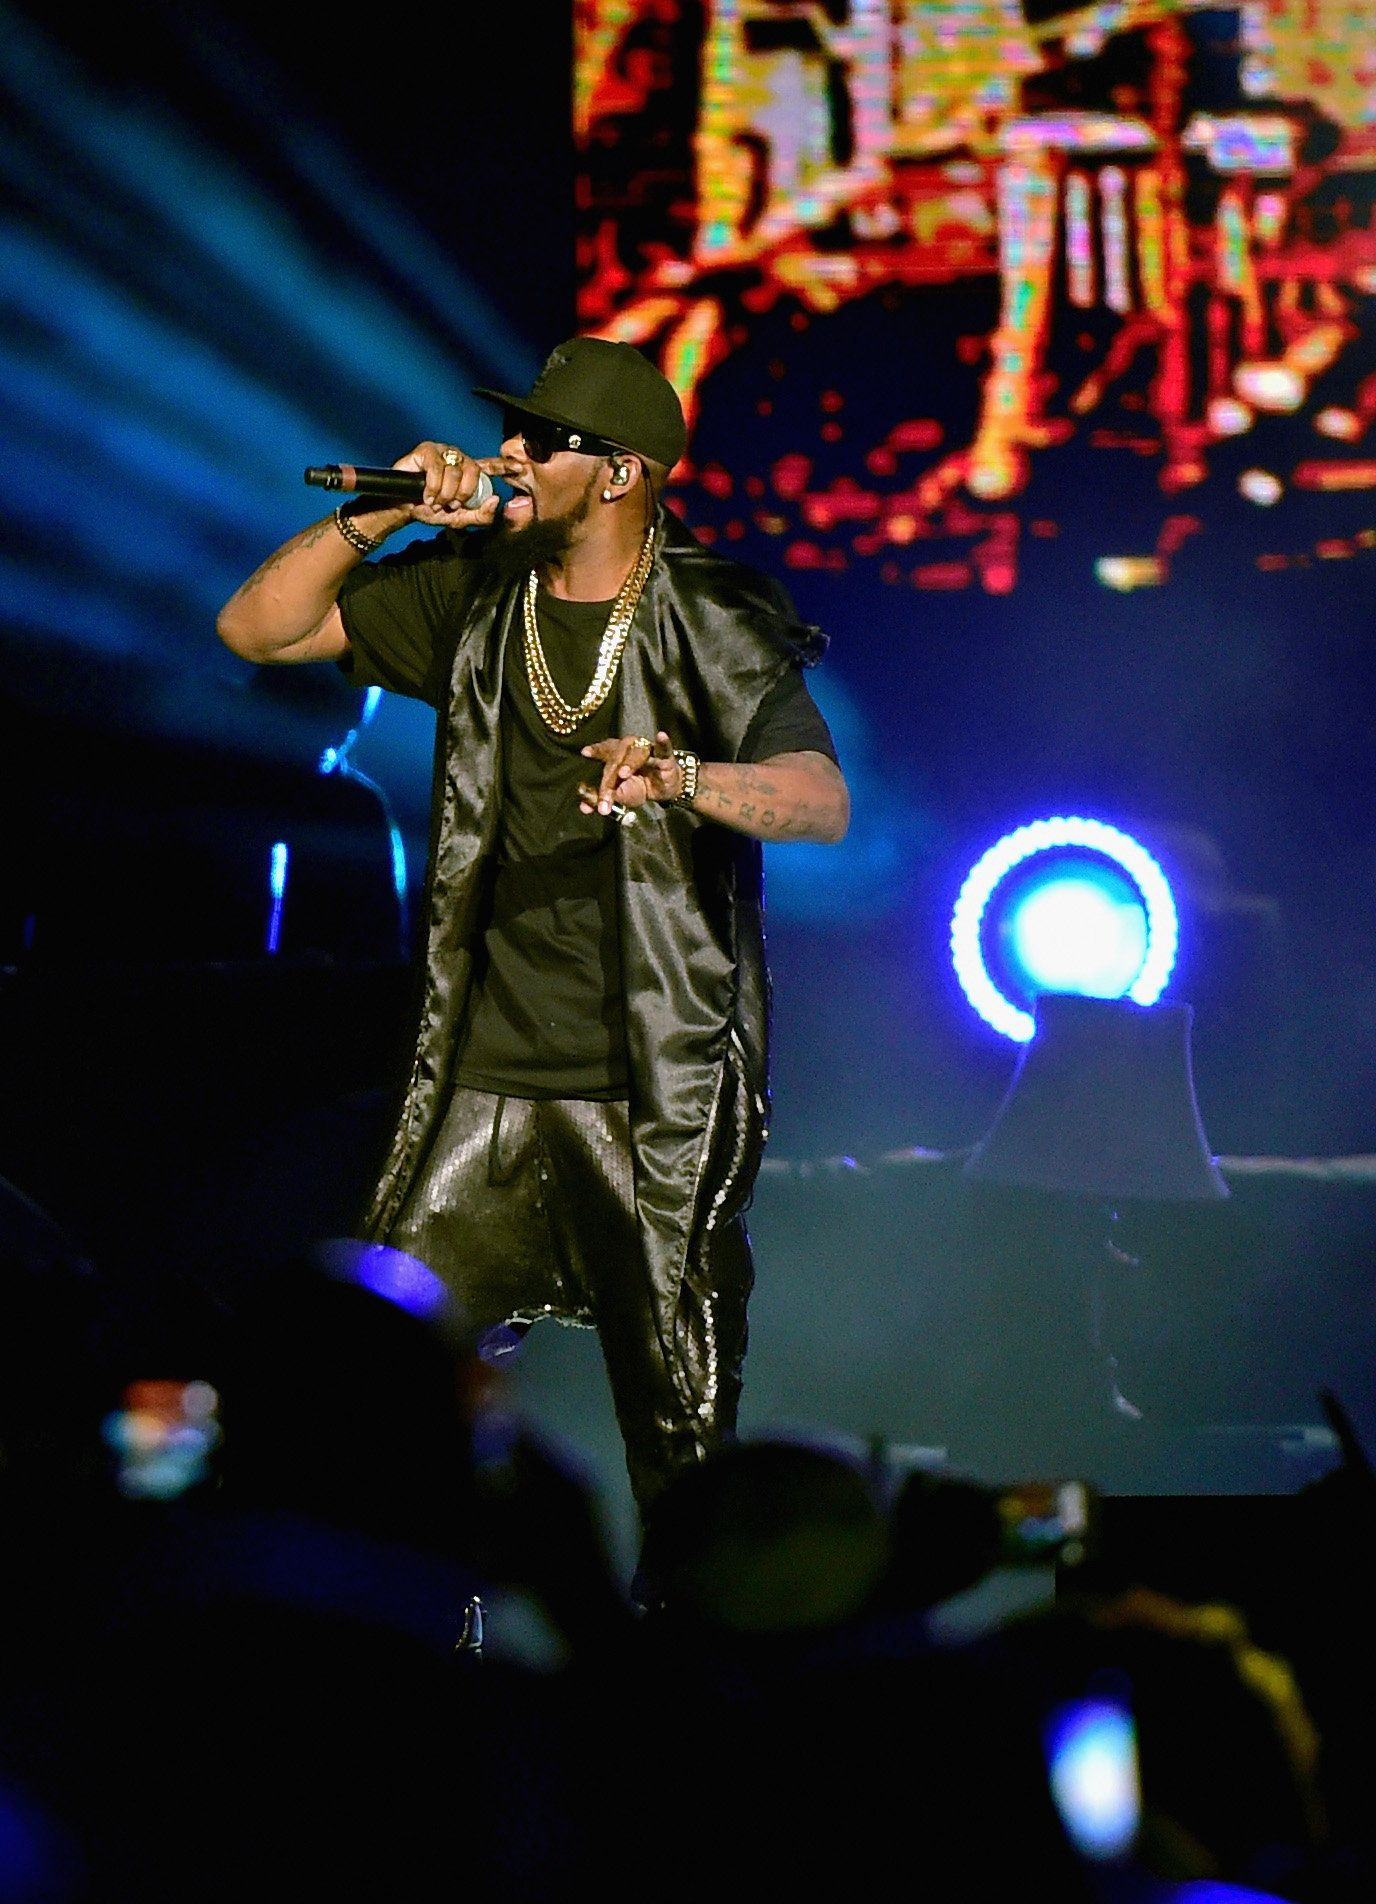 LAS VEGAS, NV - NOVEMBER 07:  Recording artist R. Kelly perfoms onstage during the Soul Train Weekend Concert 2015 at the Mandalay Bay Events Center on November 7, 2015 in Las Vegas, Nevada.  (Photo by Paras Griffin/BET/Getty Images)